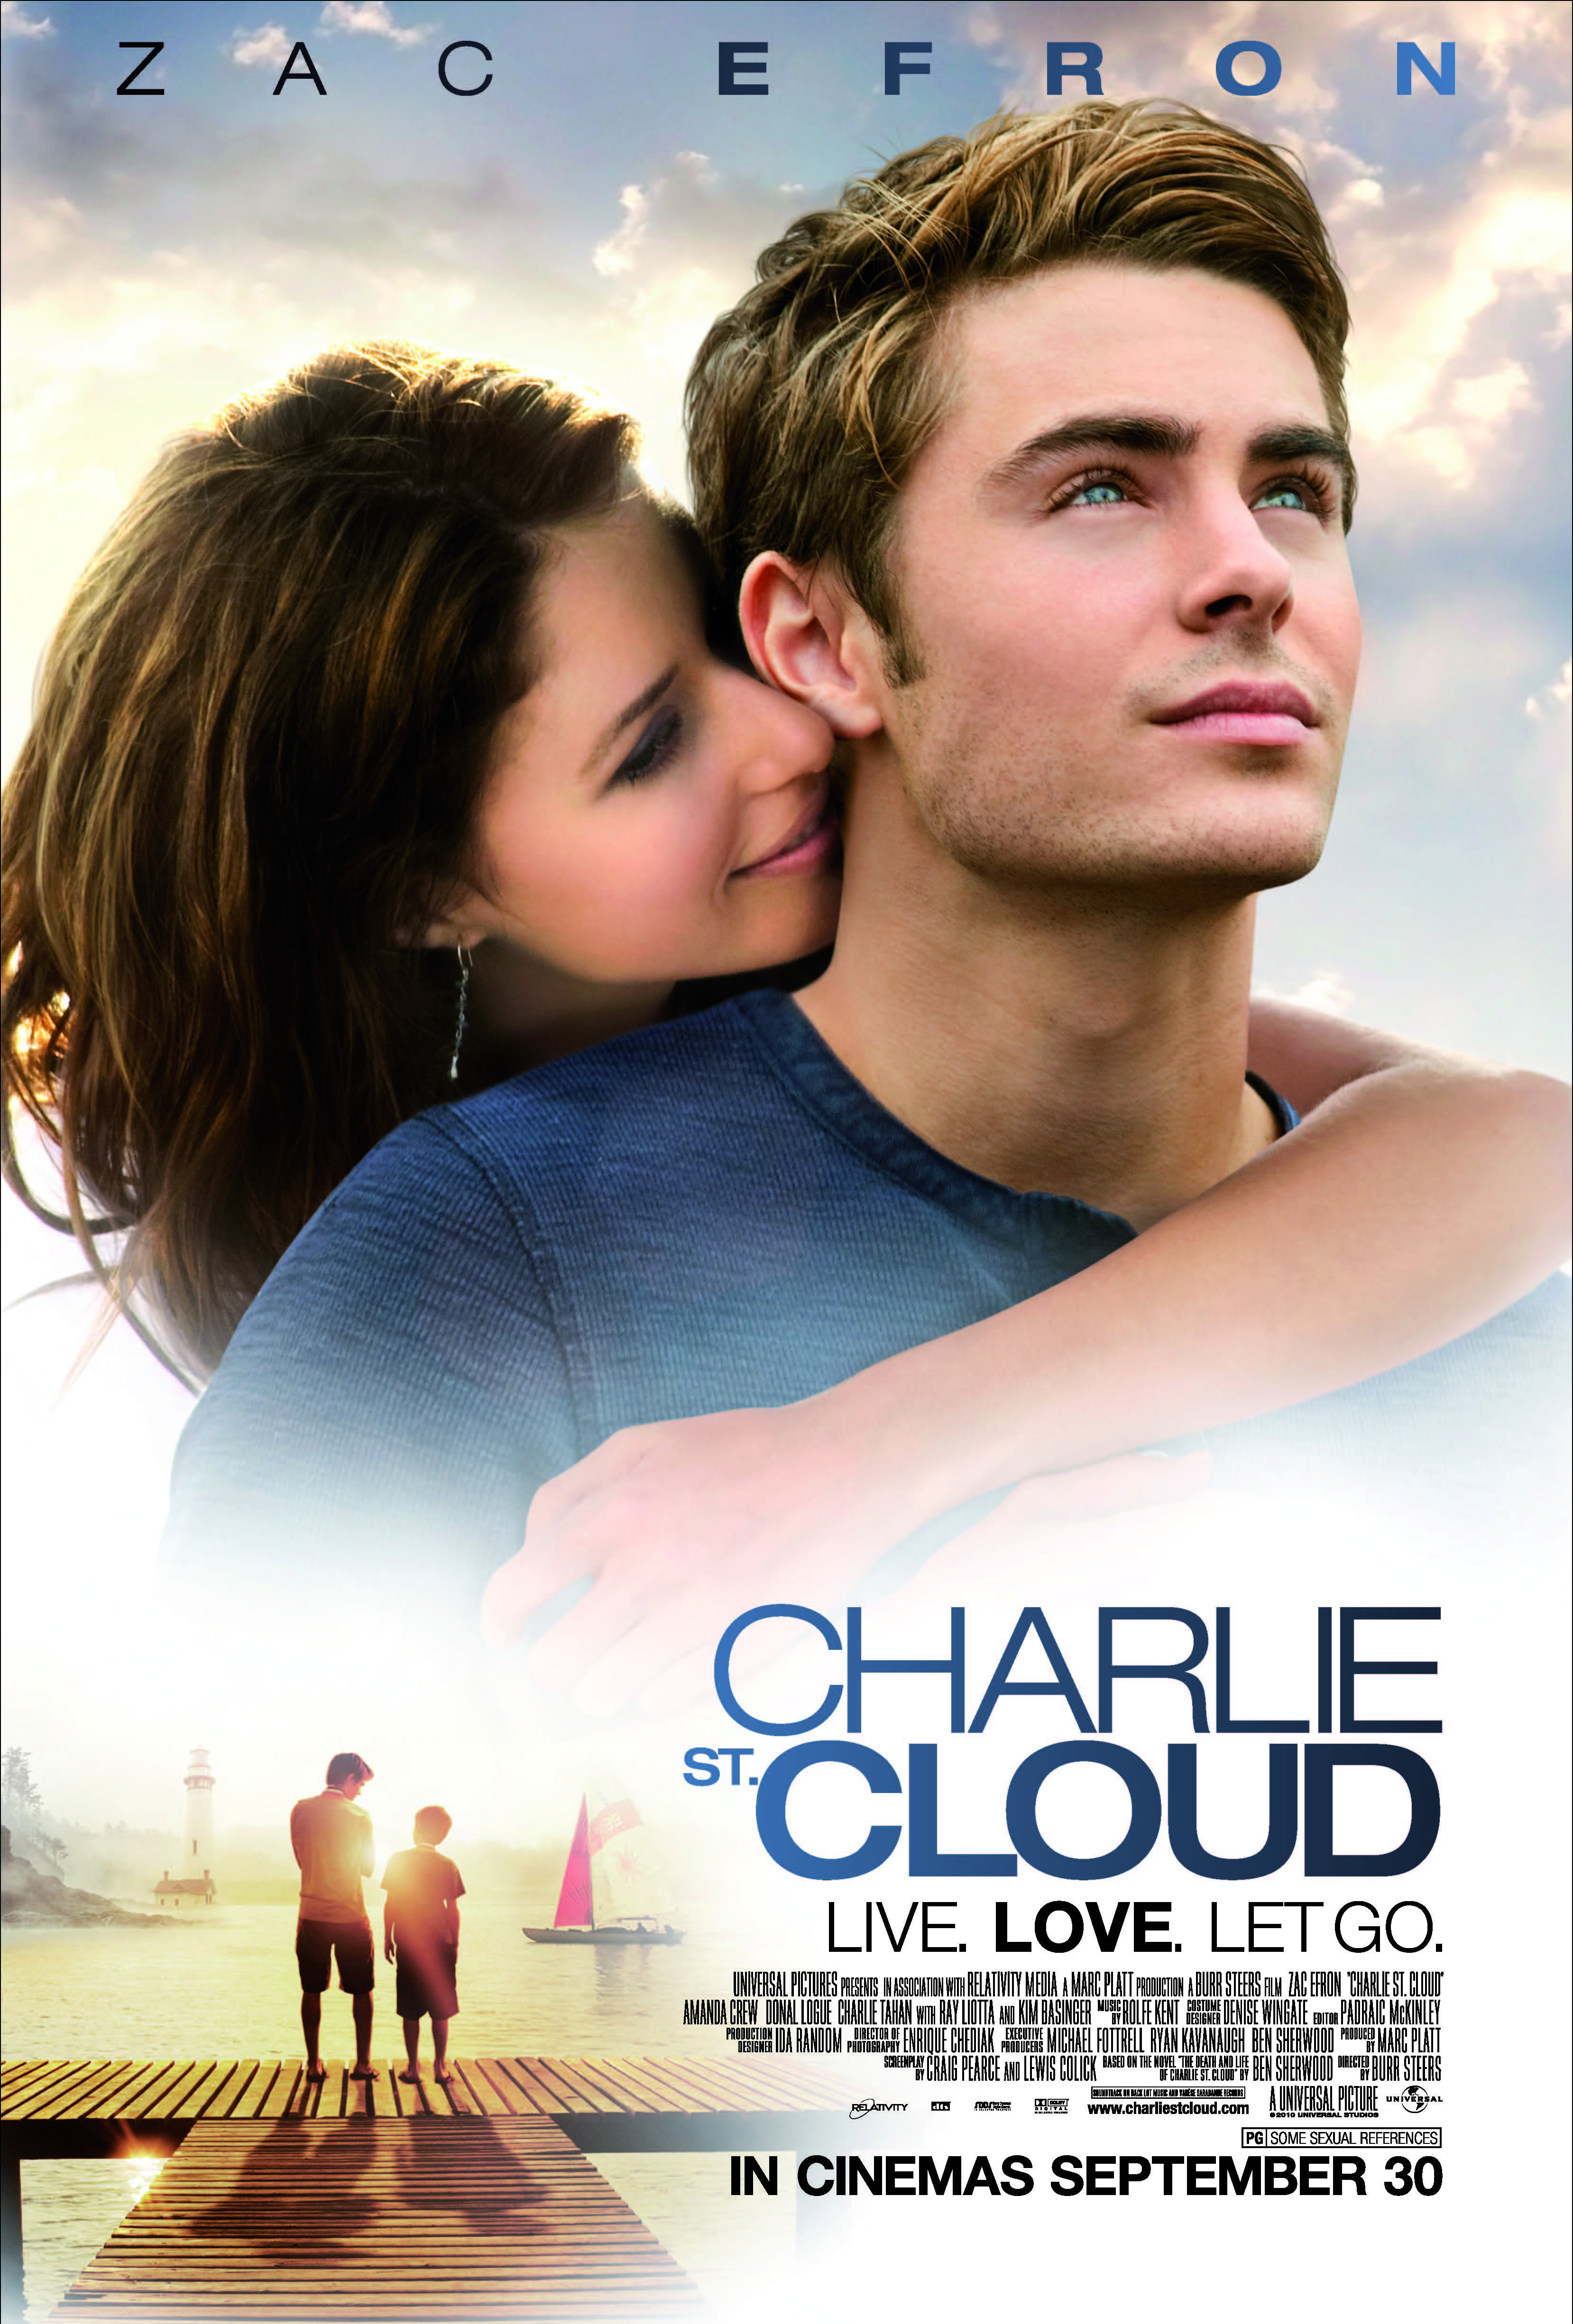 Charlie St Cloud Makes Me Cry But An Amazing Book And Movie